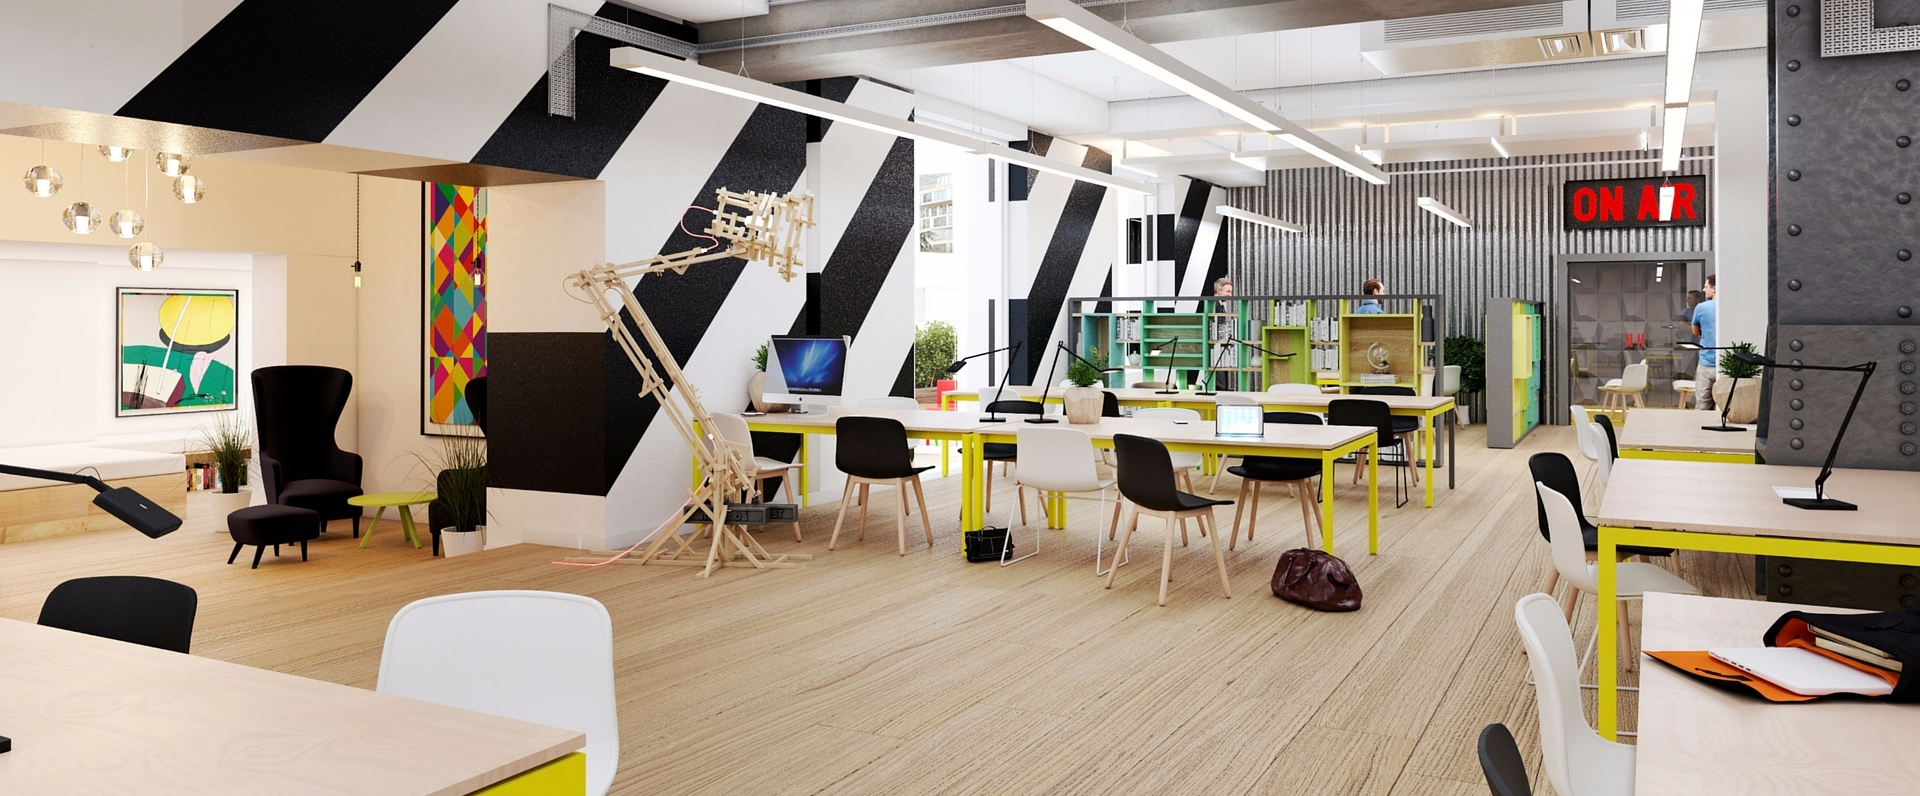 london-coworking-huckletree-shoreditch